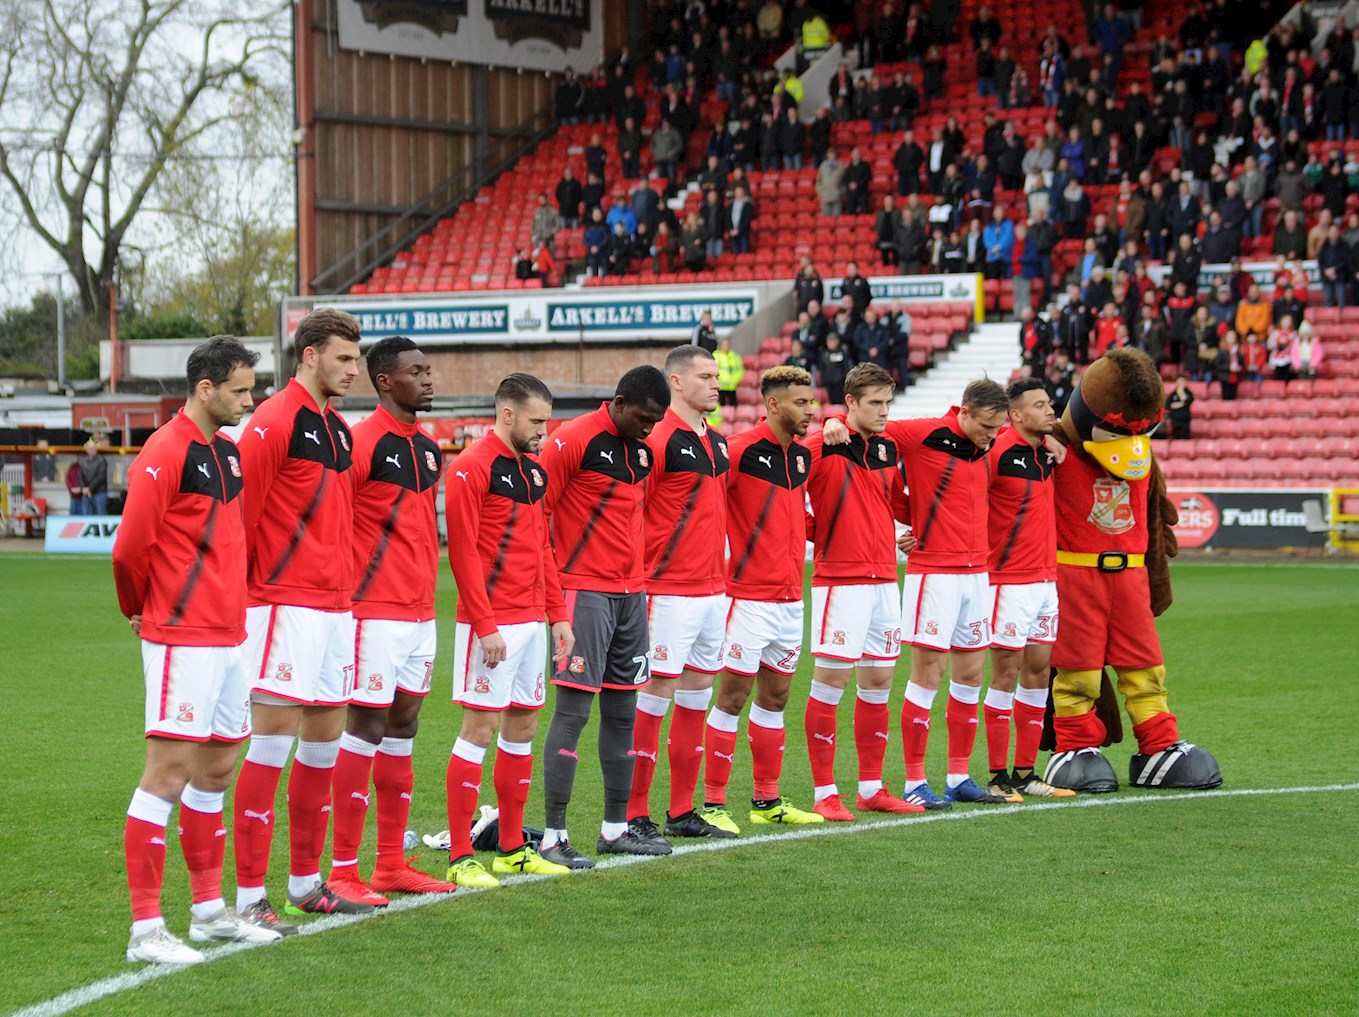 Football Table Game >> Accrington Stanley V Swindon Town - Three Things To Look Out For - News - Swindon Town